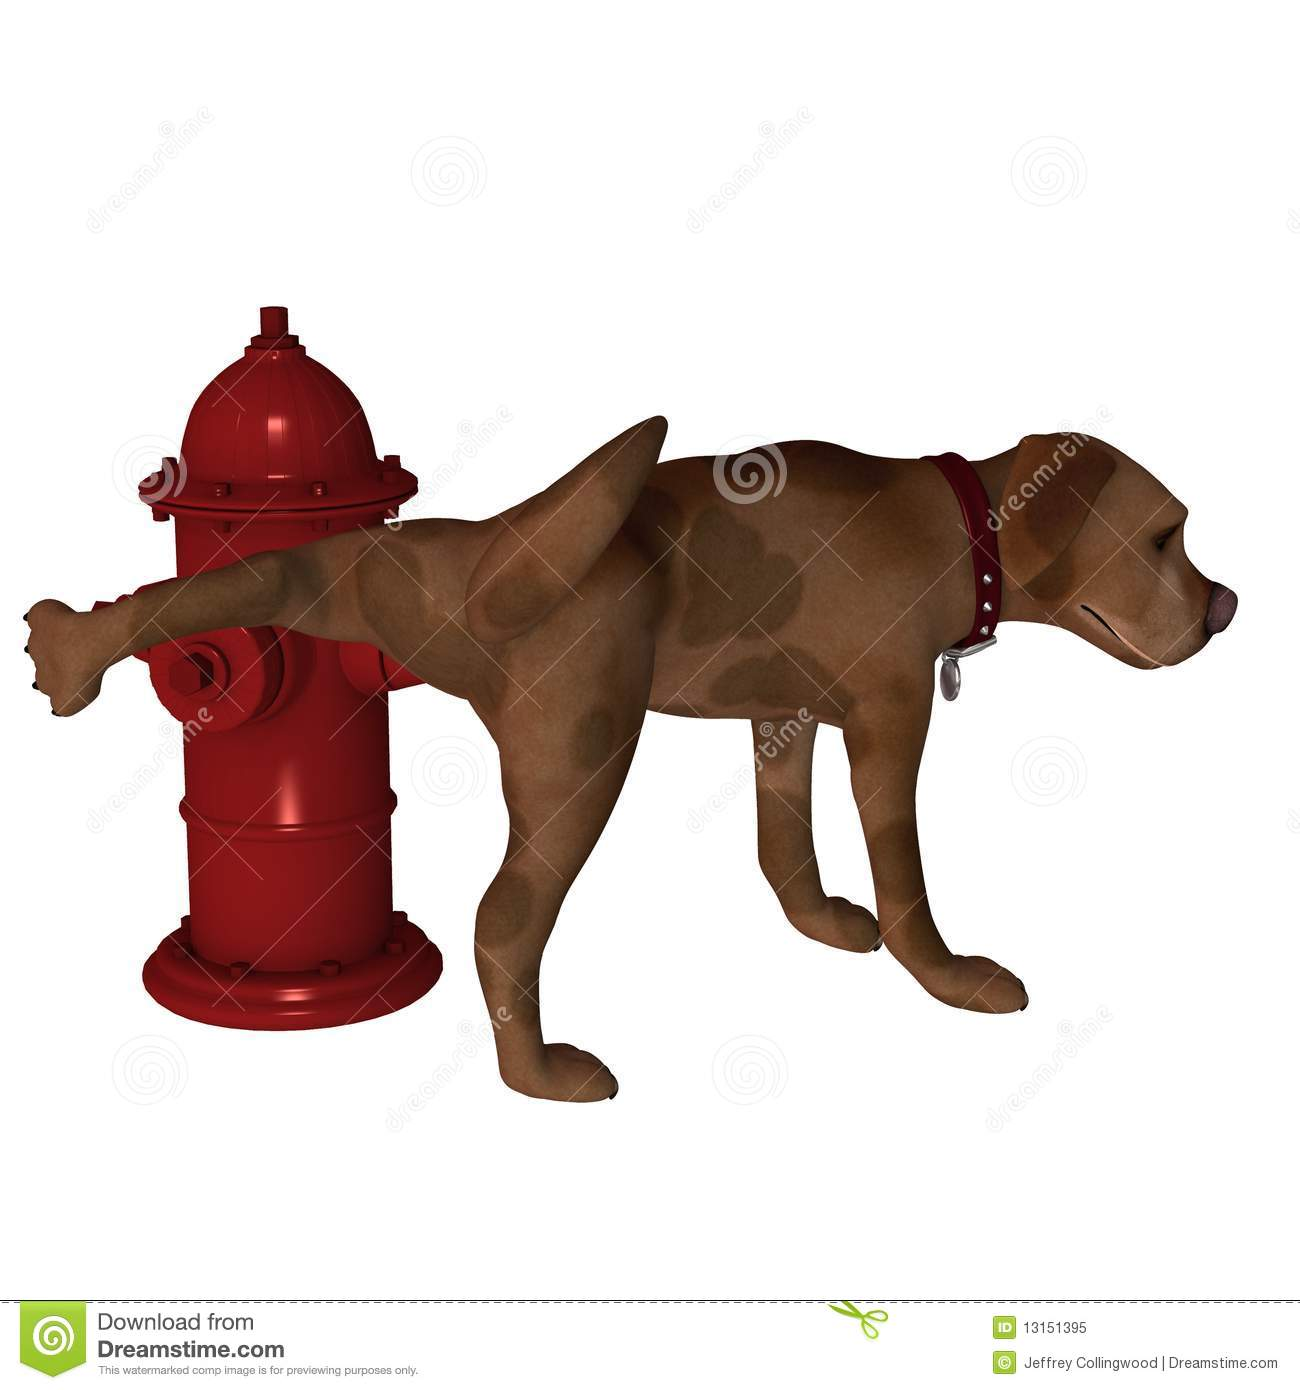 how to turn on a fire hydrant